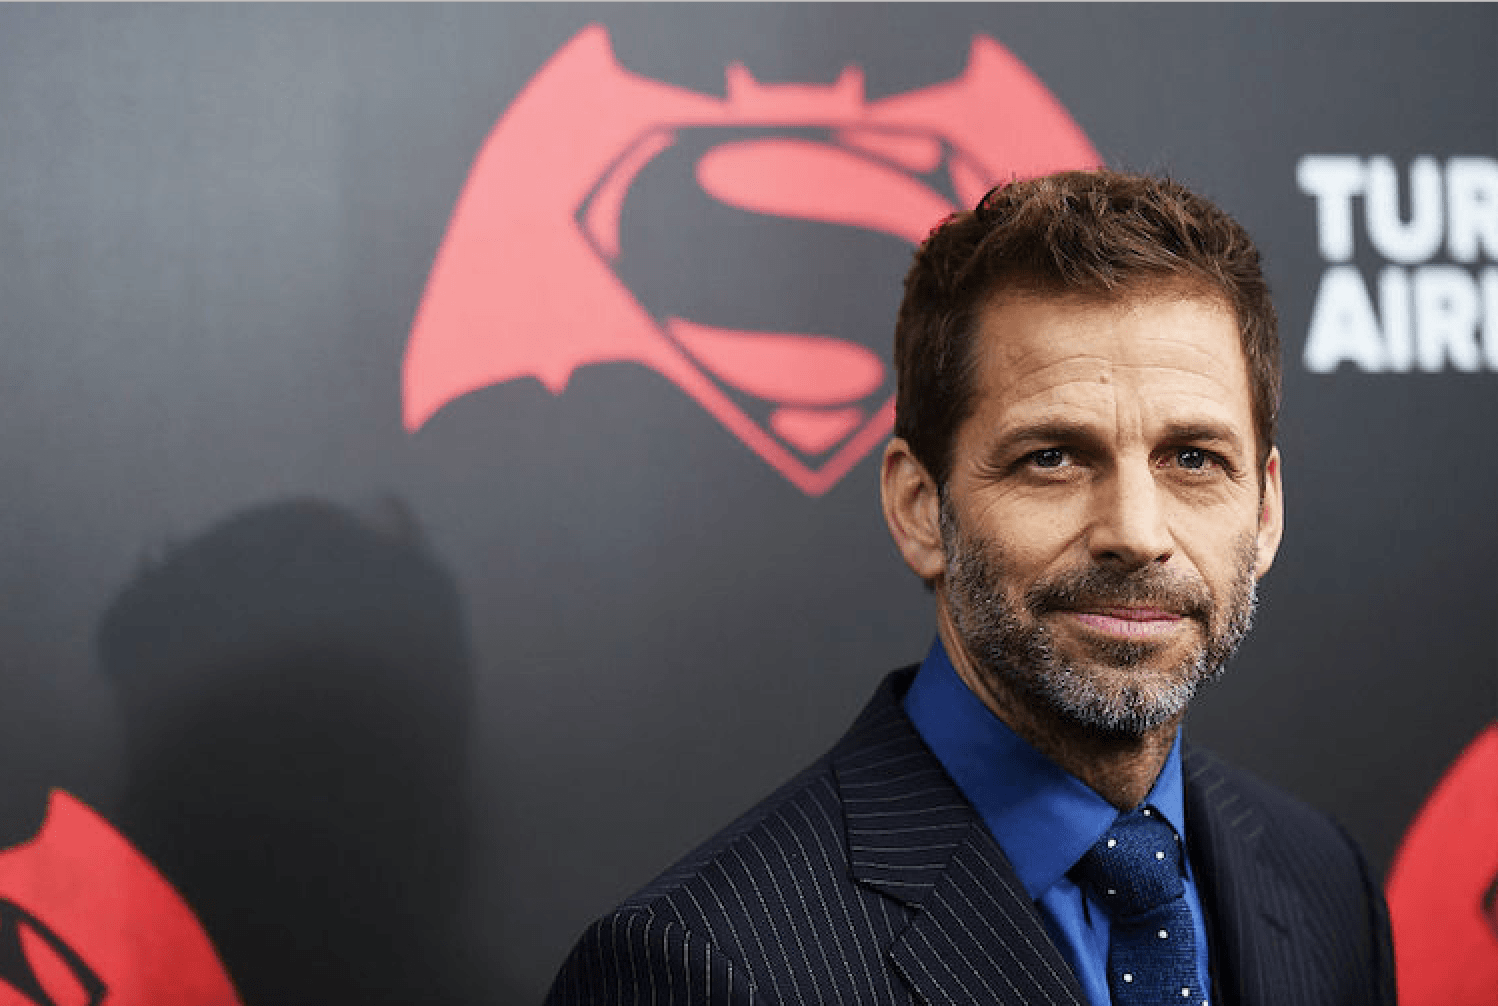 Zack Snyder stares into a camera